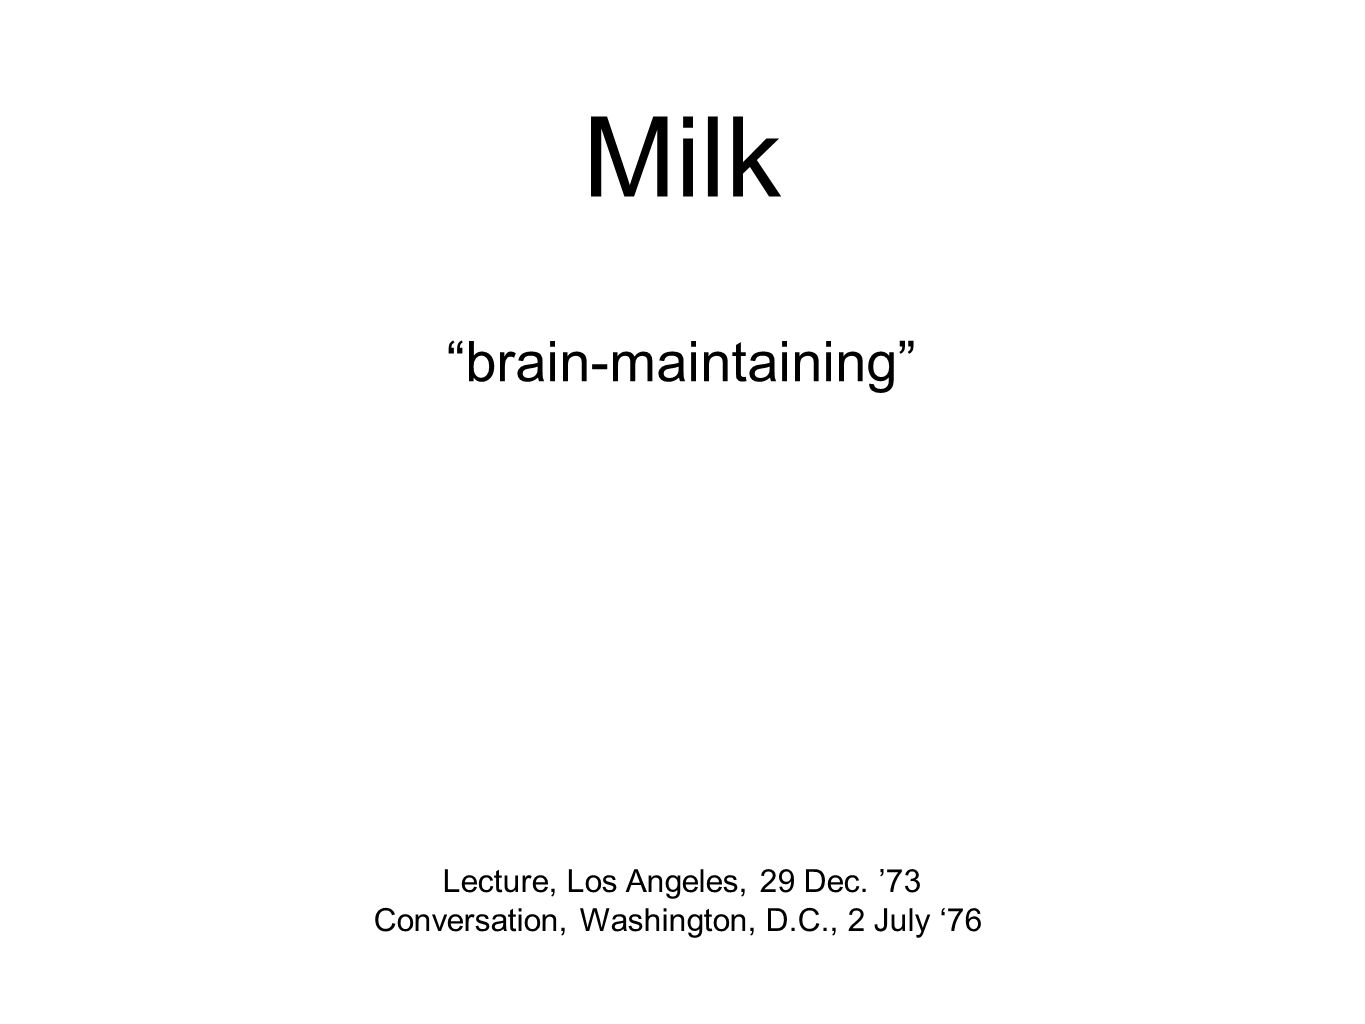 Milk brain-maintaining Lecture, Los Angeles, 29 Dec.